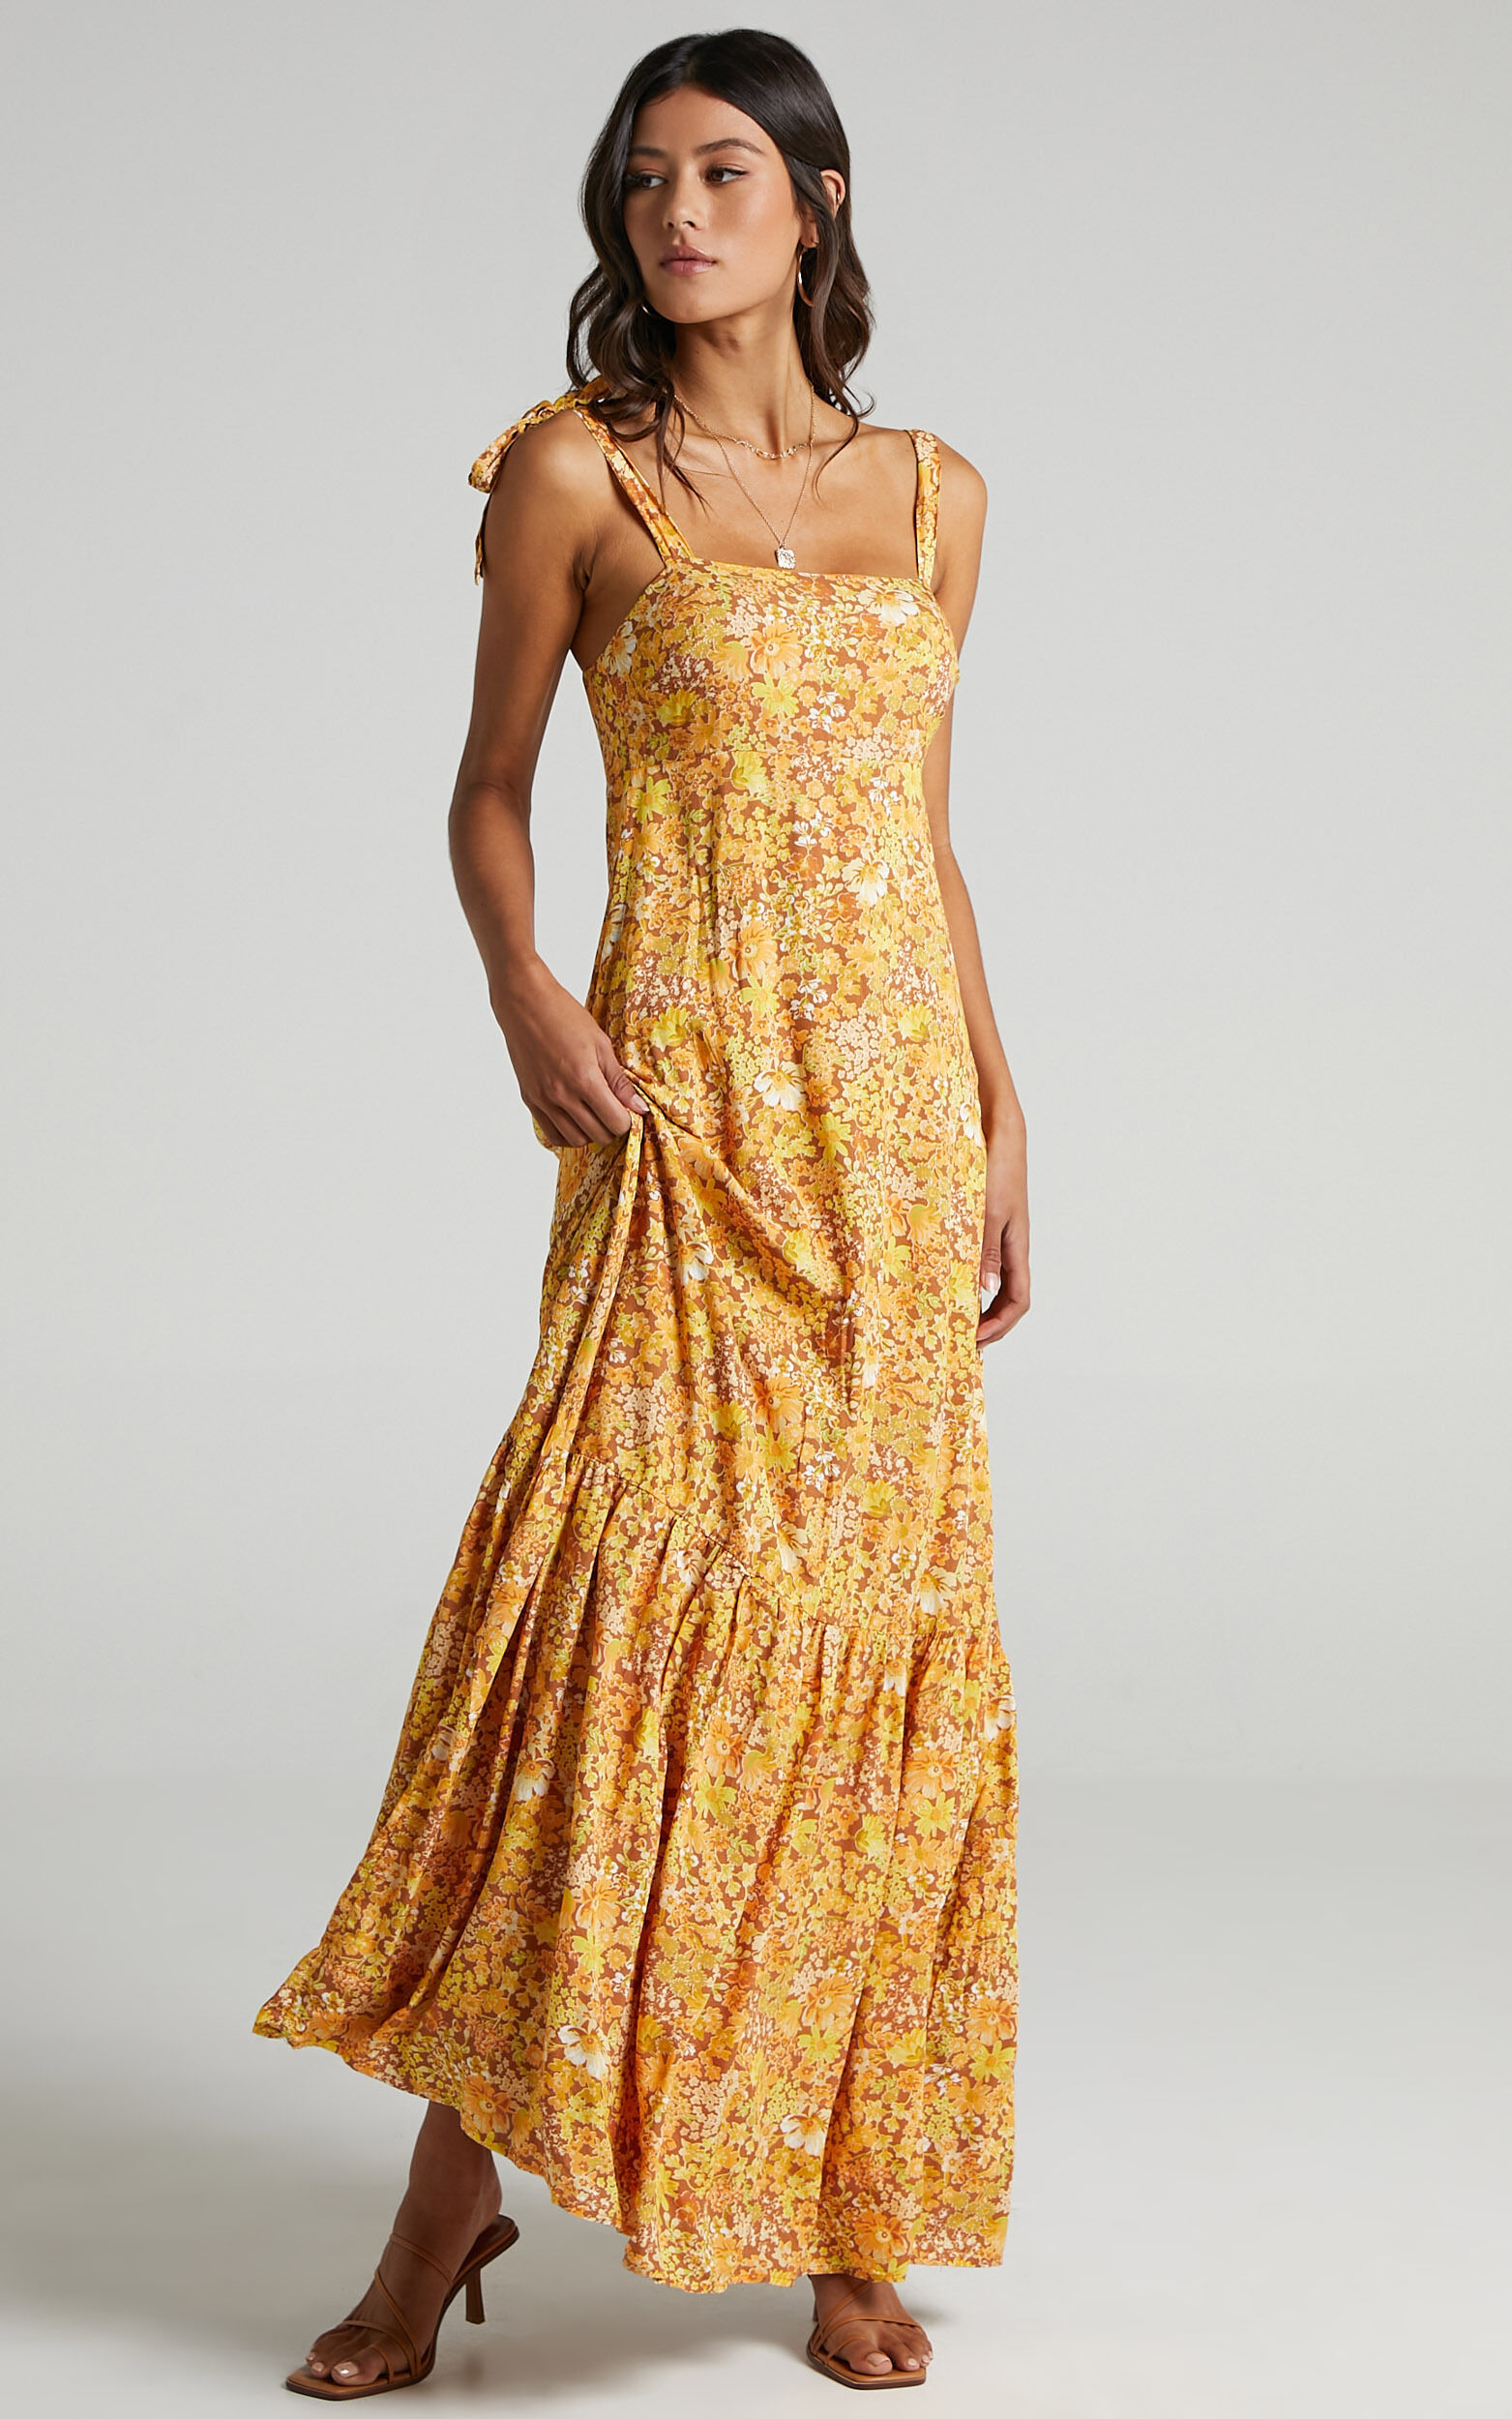 Honor Dress in Rustic Floral - 6 (XS), Mustard, super-hi-res image number null